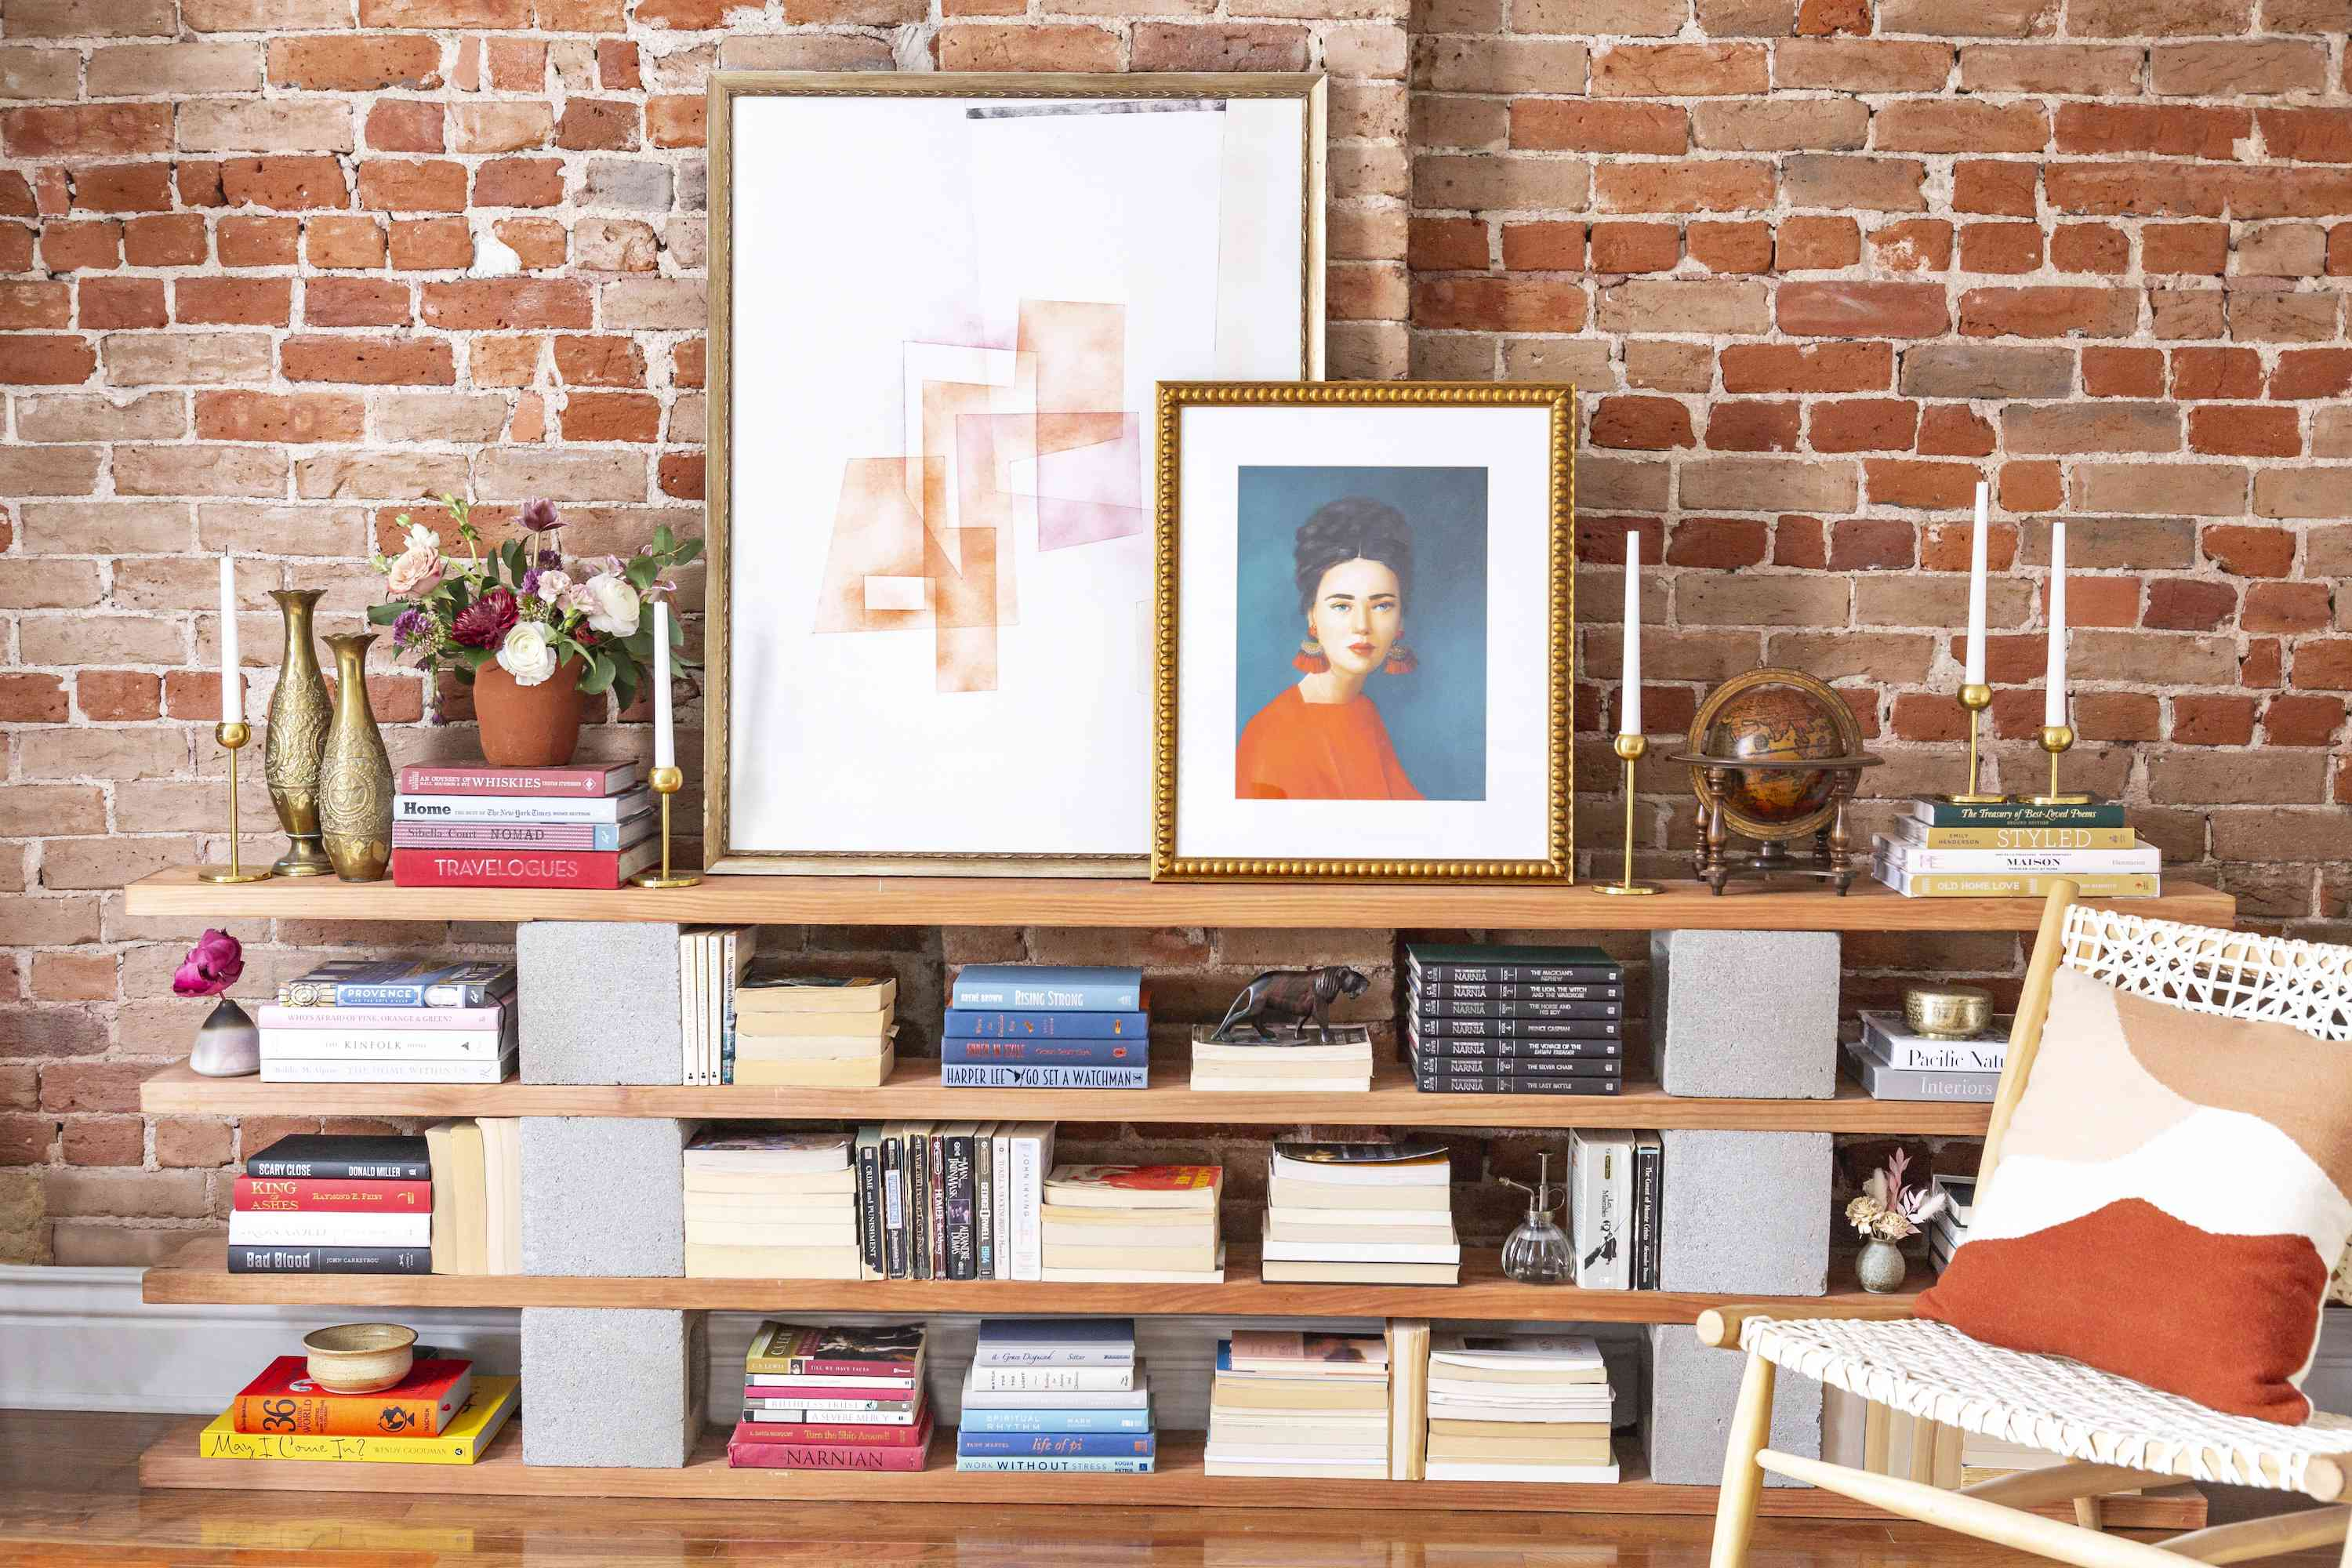 Open shelving with lots of books and art.